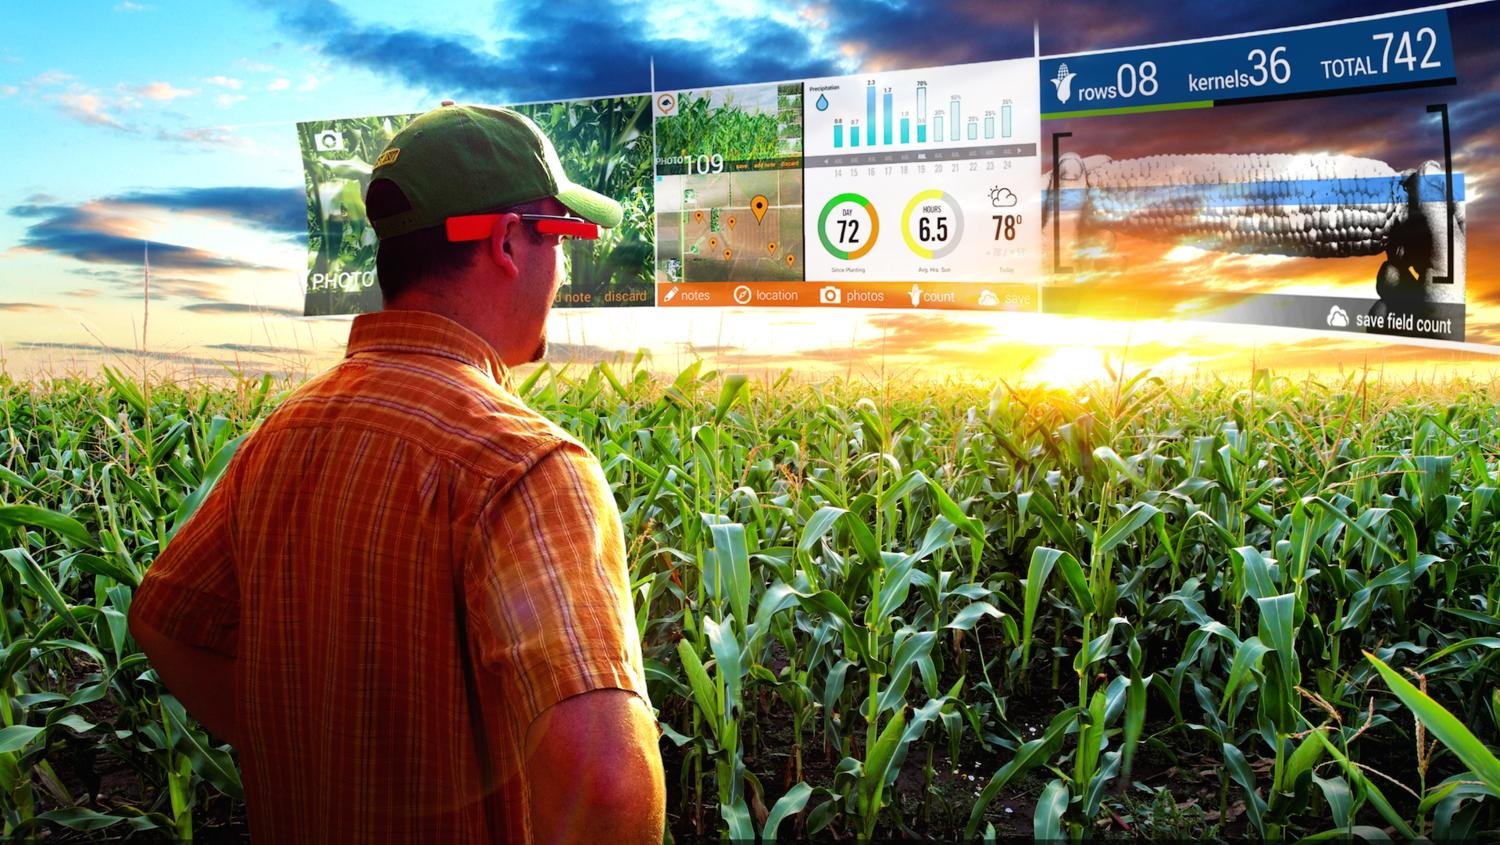 Il futuro dell'Agricoltura 4.0: droni e intelligenza artificiale